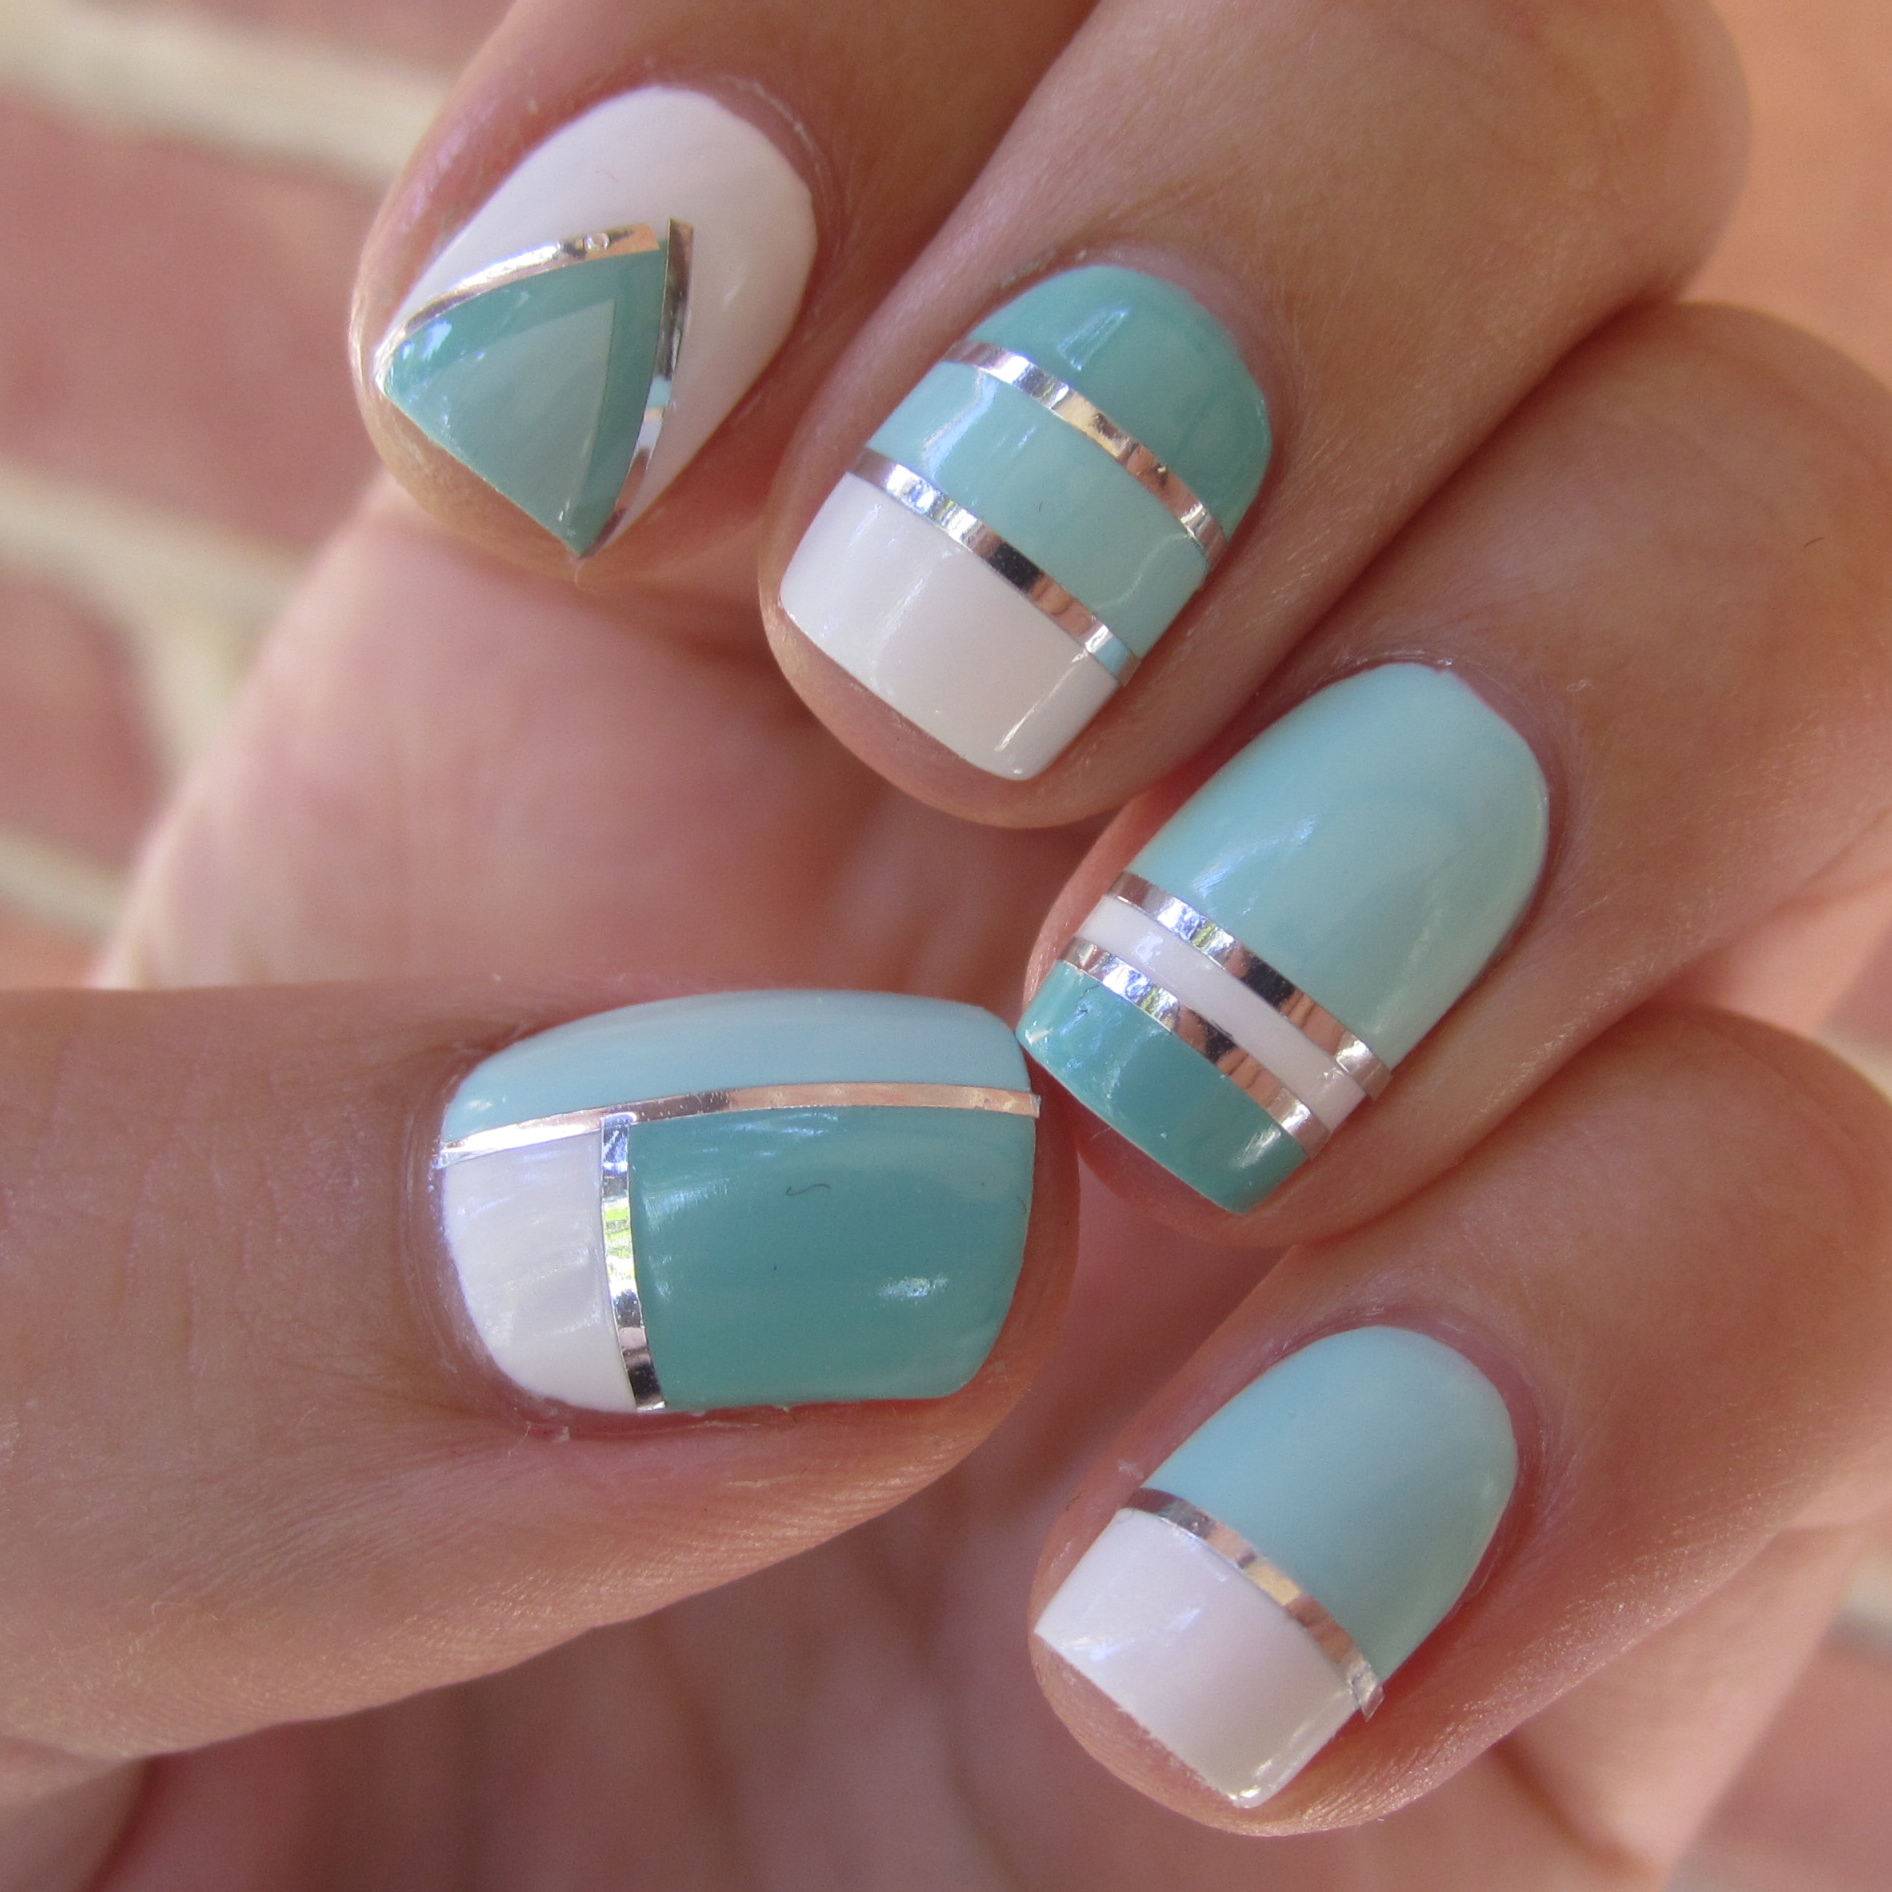 9 Nail Art Designs 2014 Images